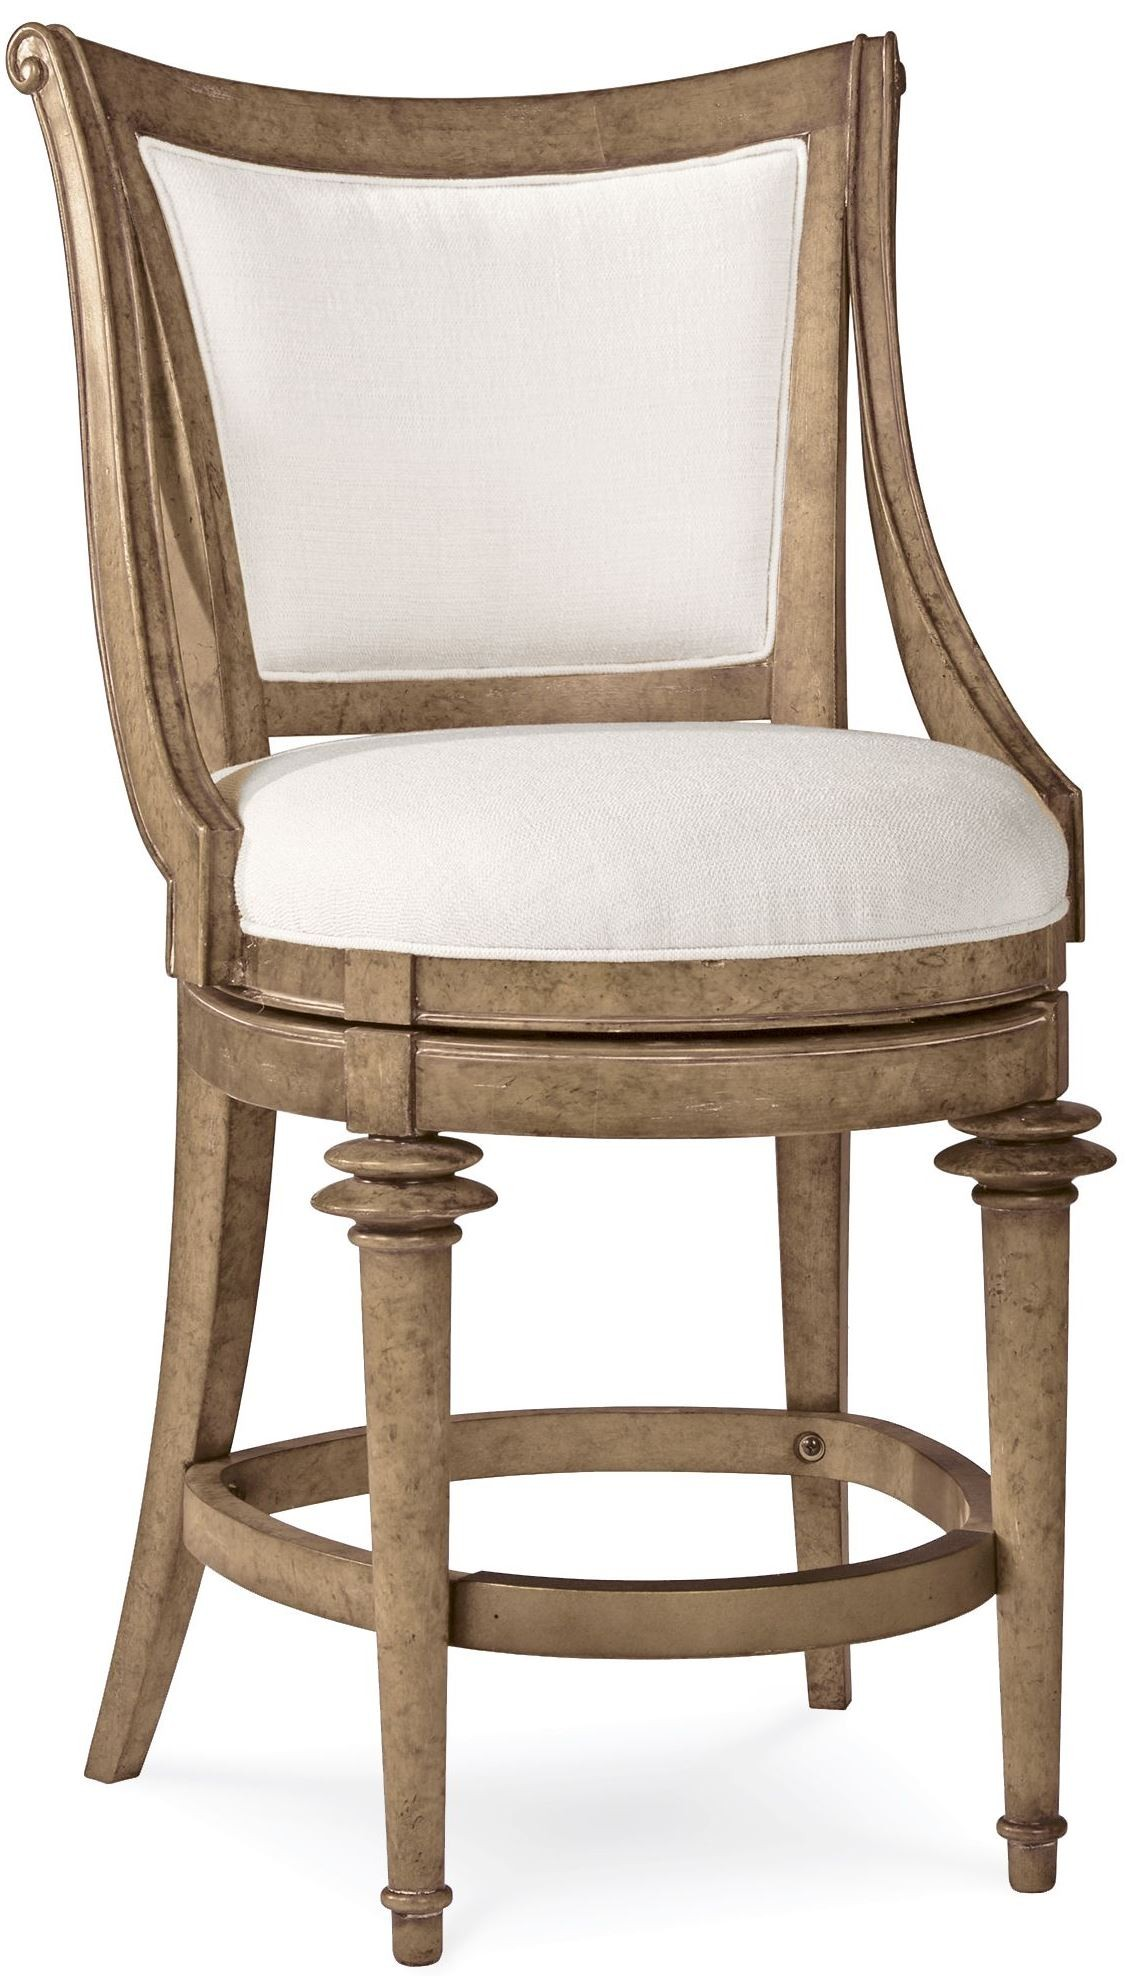 Pavilion Upholstered Back High Dining Chair From Art